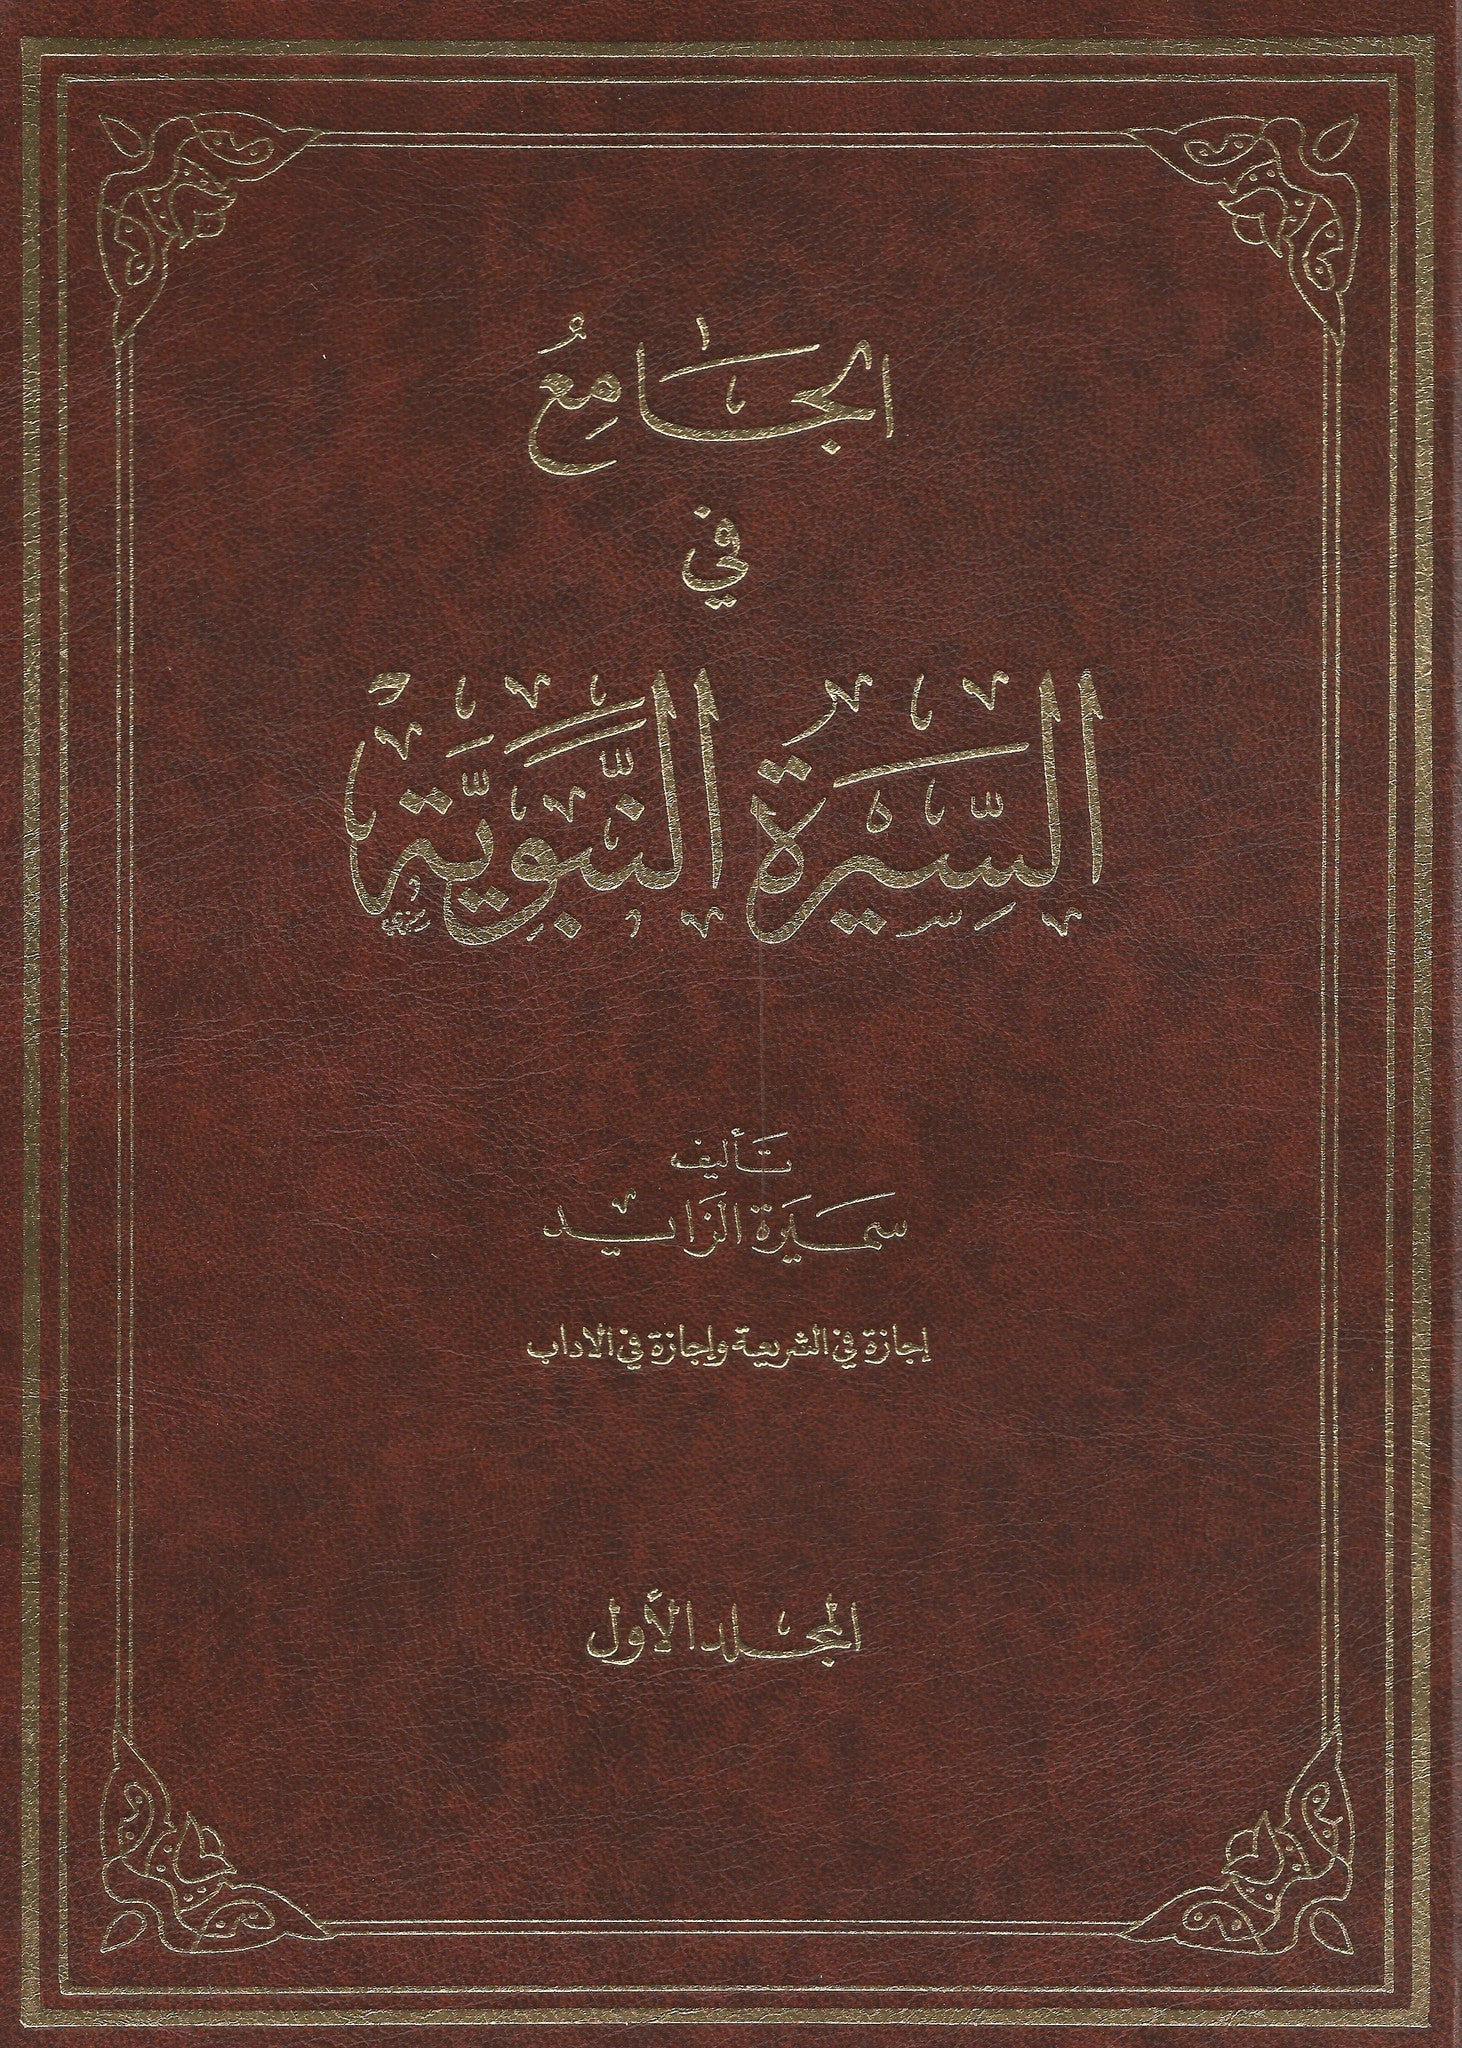 Al-Jami fi al-Sirah (6 volumes) الجامع في السيرة النبوية , Shaam - Daybreak International Bookstore, Daybreak Press Global Bookshop